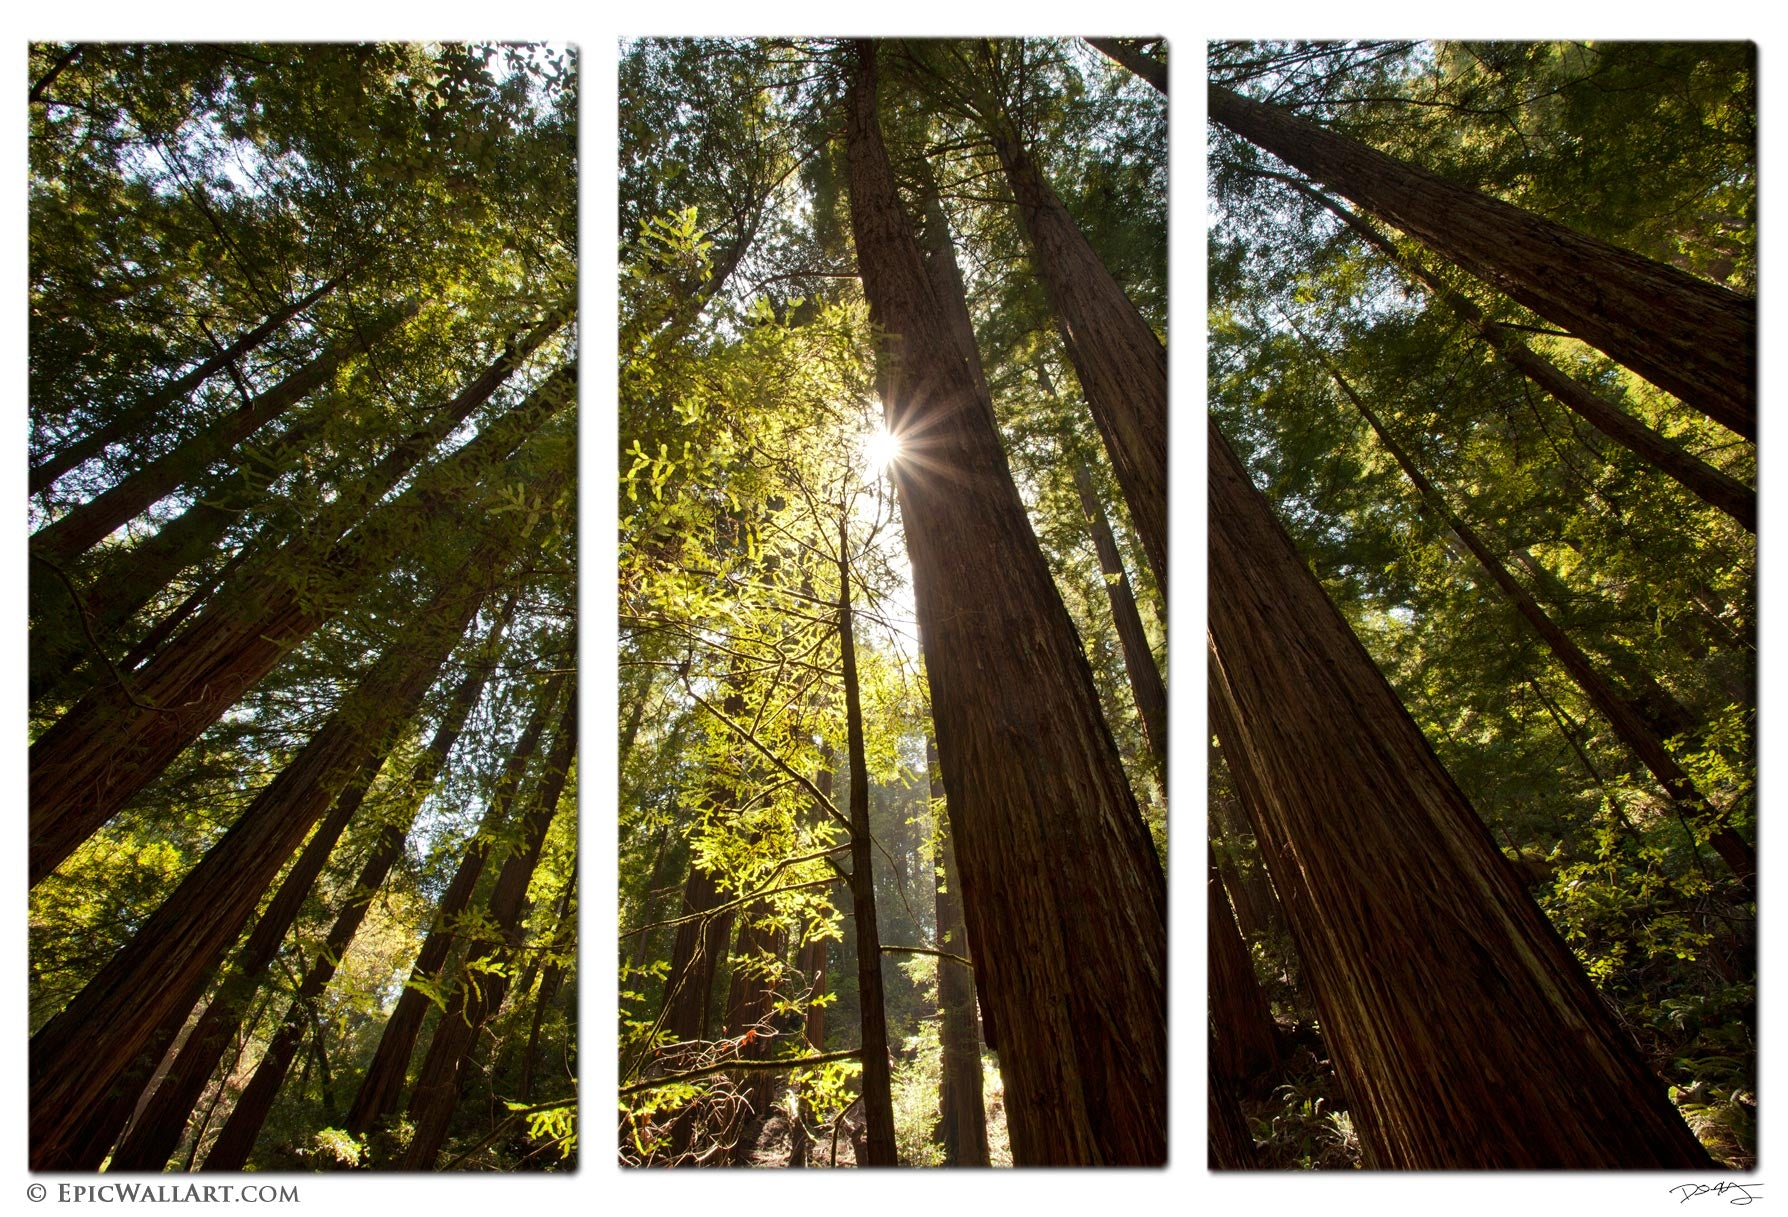 towering forest sunlight sunlight bursts through the towering redwood trees in this colorful and inspiring natural scene captured at muir woods national monument